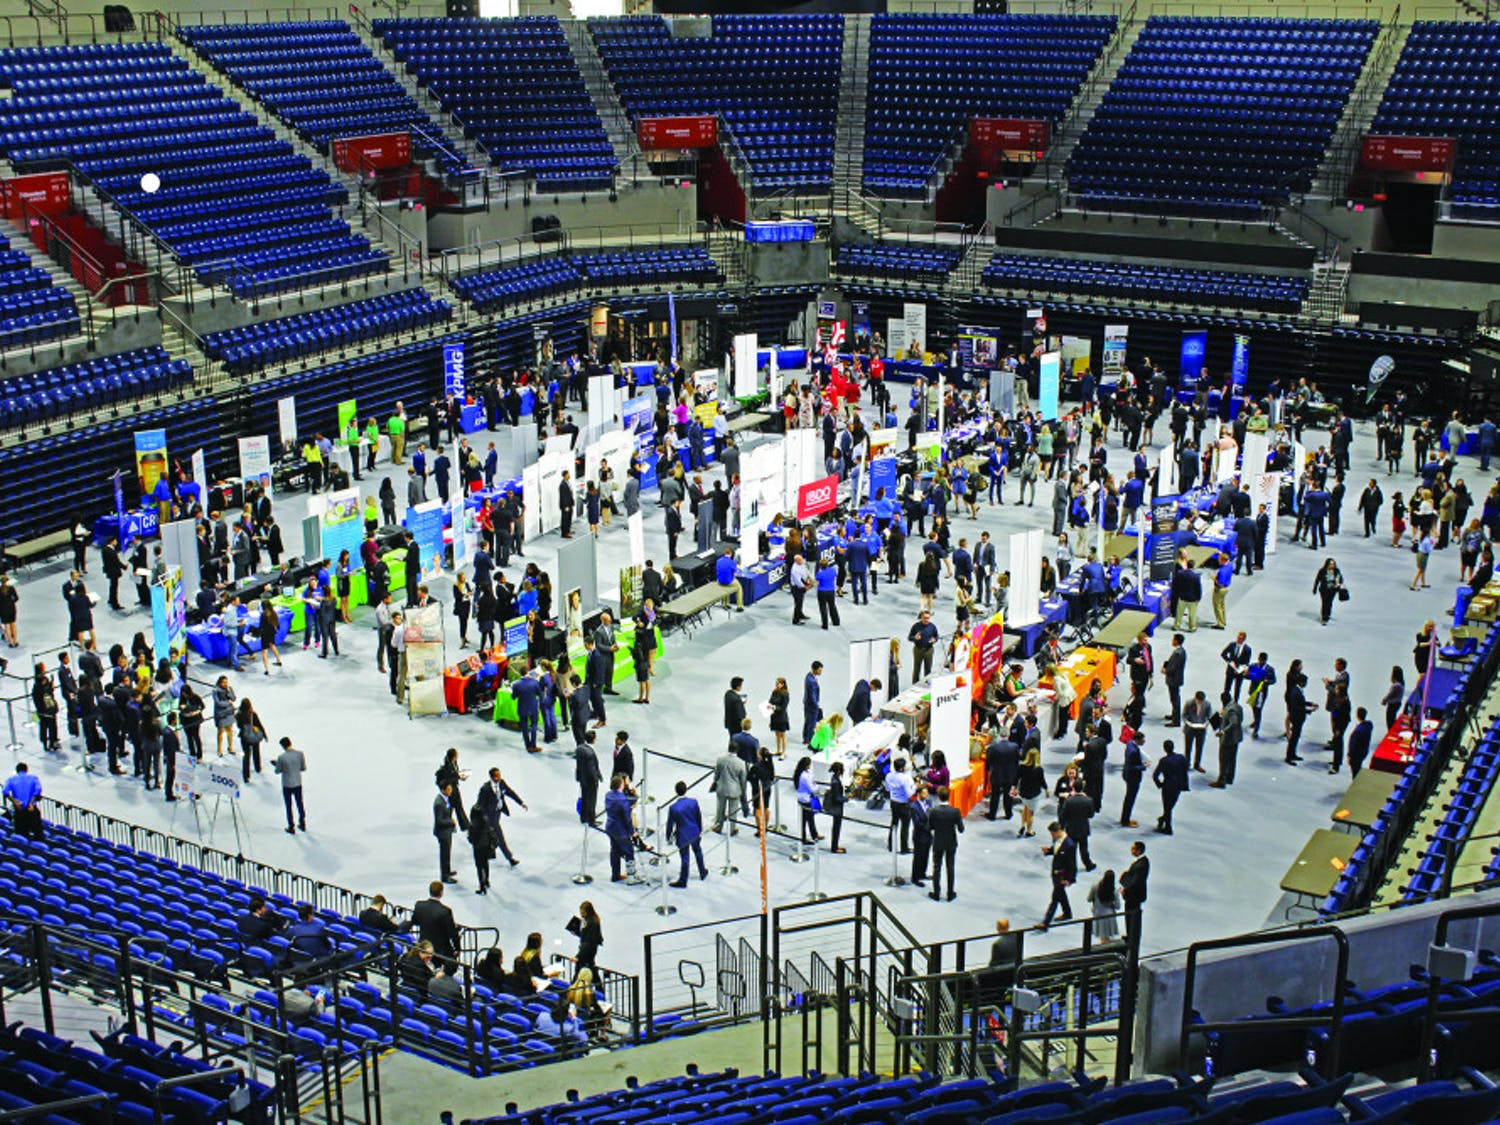 The first Career Showcase in the newly renovated Stephen C. O'Connell Center drew in many students in January 2017. More than 250 employers showed up for the event.